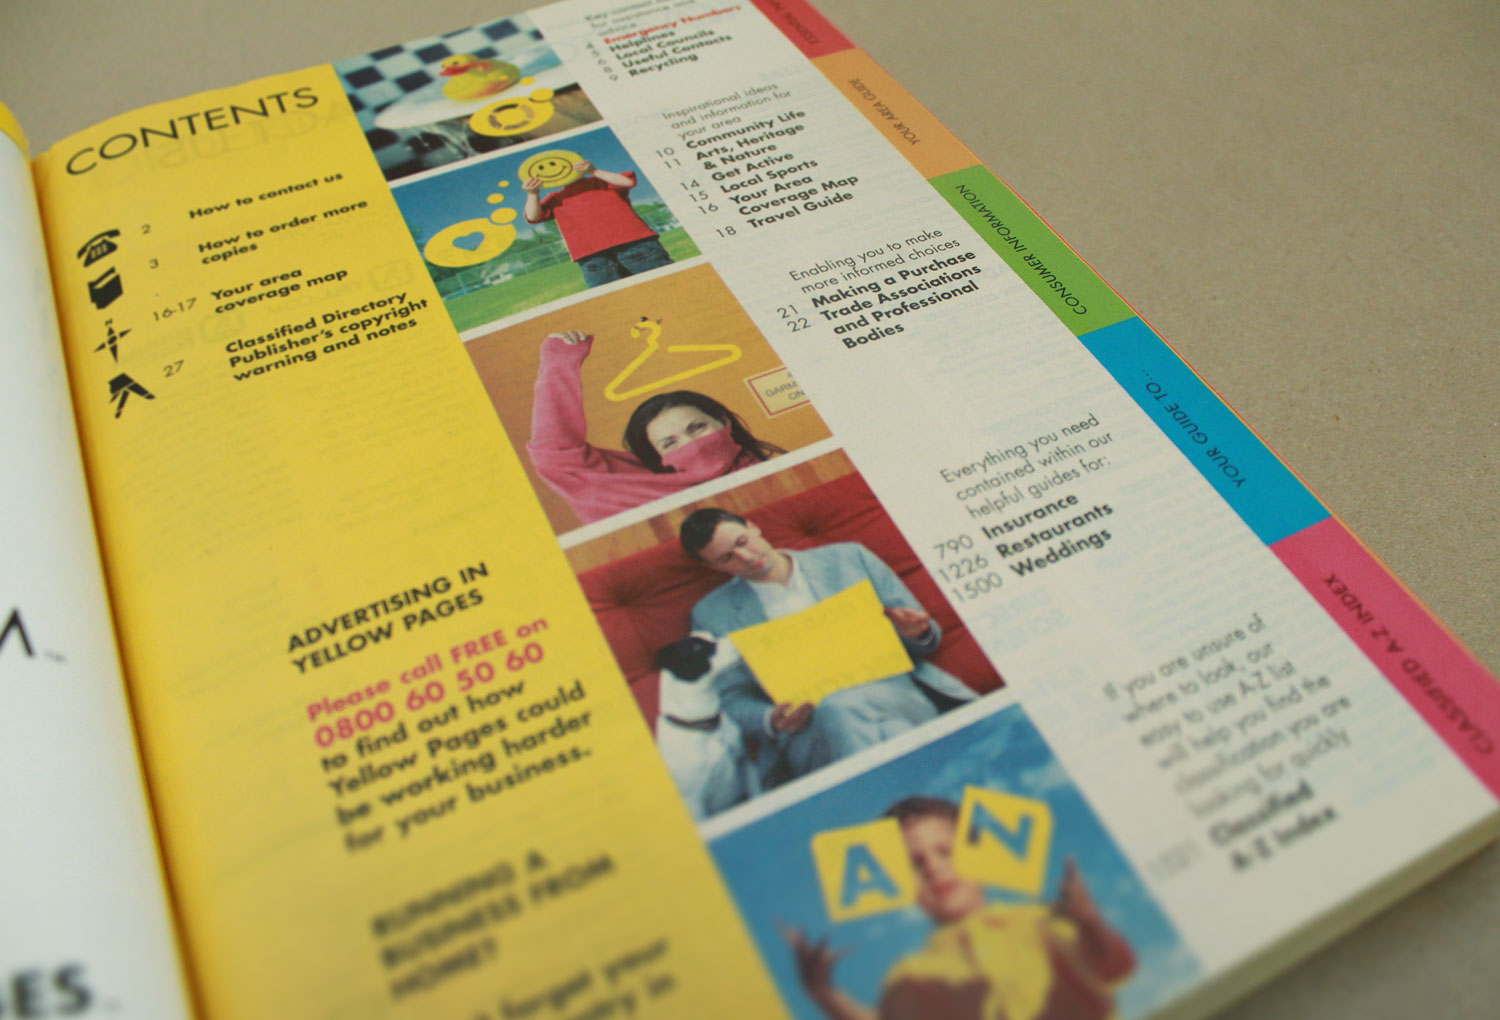 Dinnis Design Project Yellow Pages Redesign